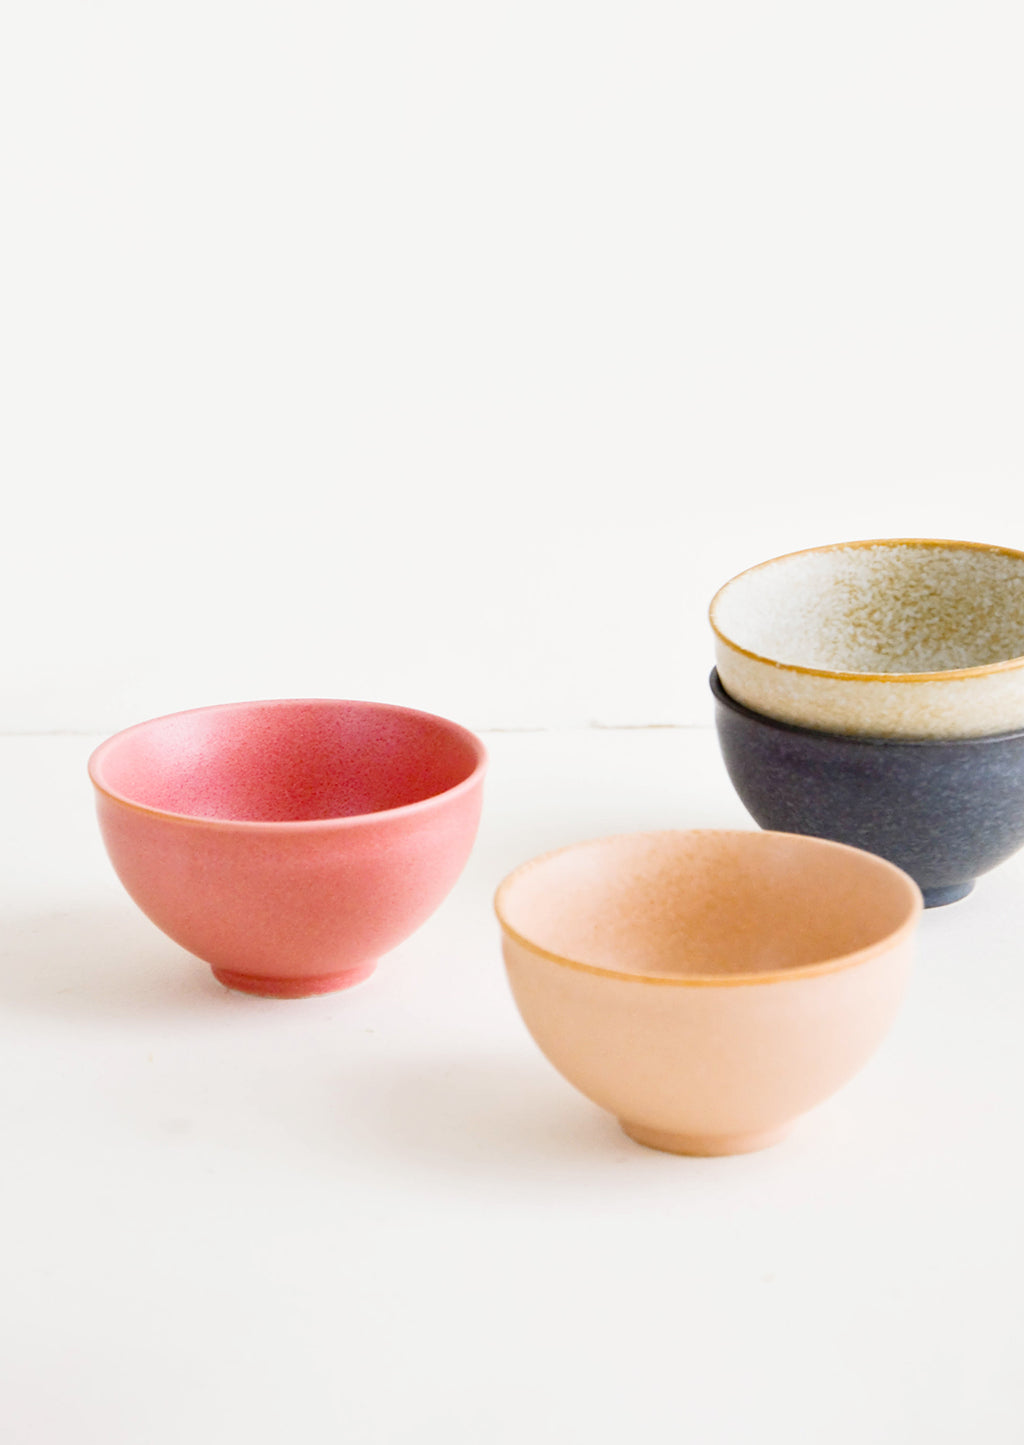 1: Mini ceramic bowls in a mix of colors